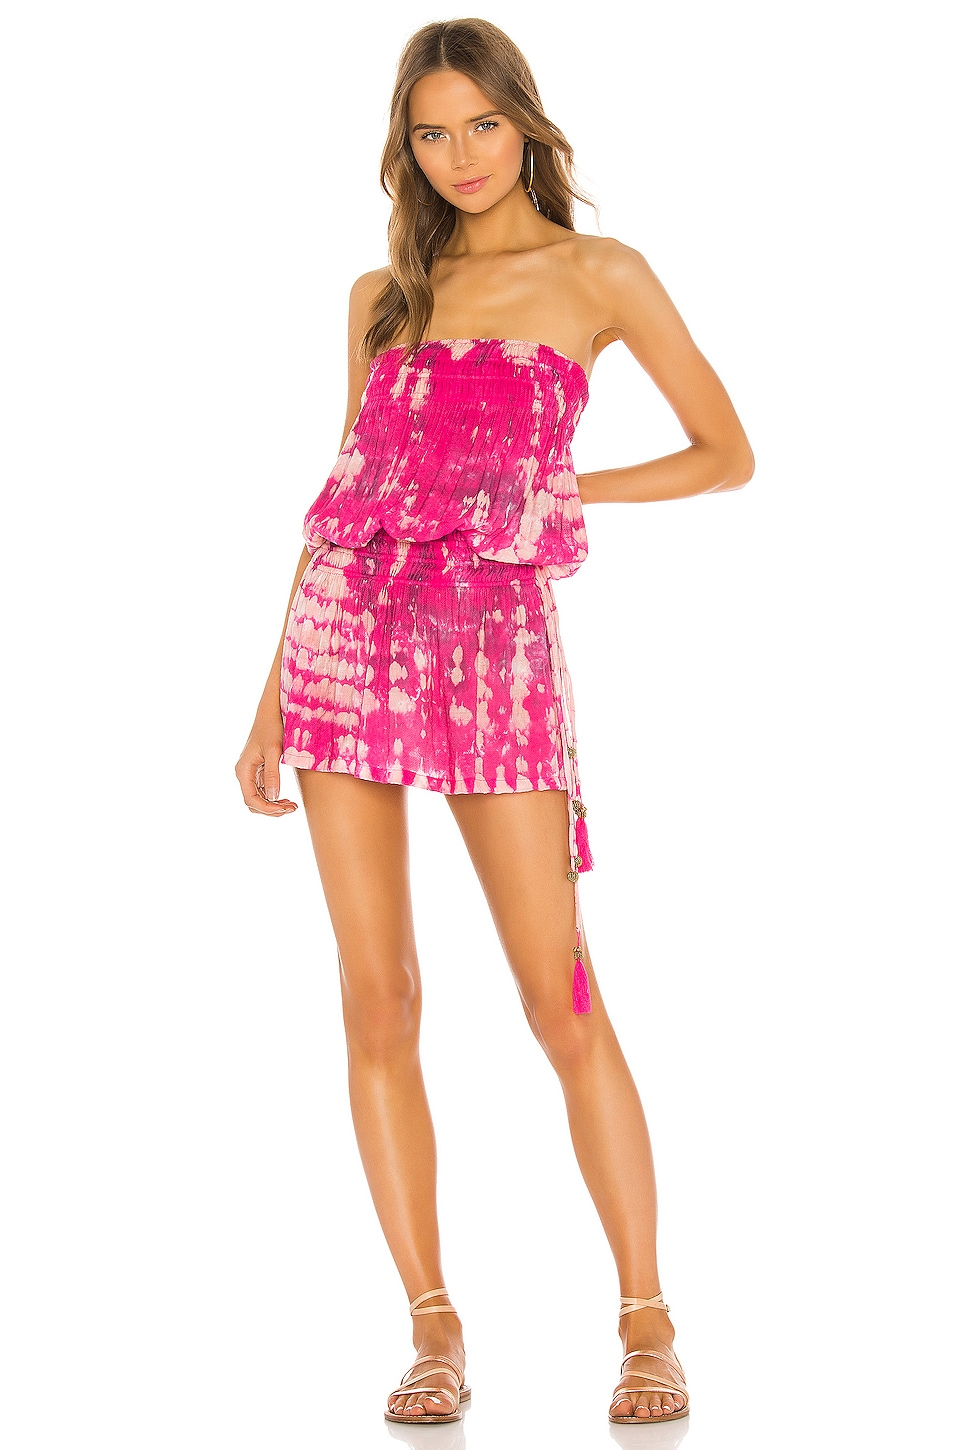 Tiare Hawaii Aina Dress in Fuchsia Stone Tie Dye